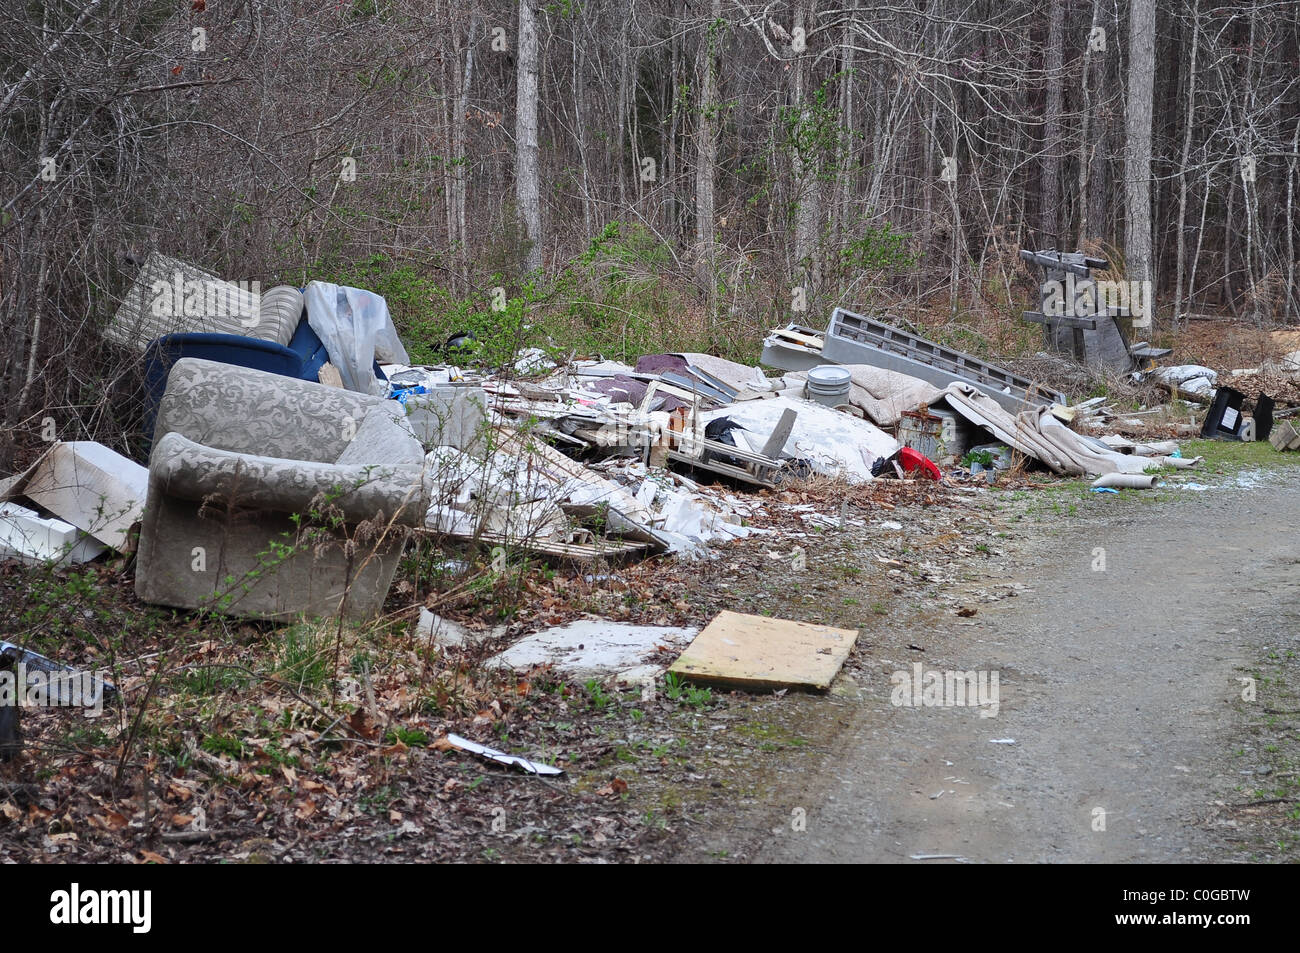 Junk and trash dumped on a rural road. - Stock Image